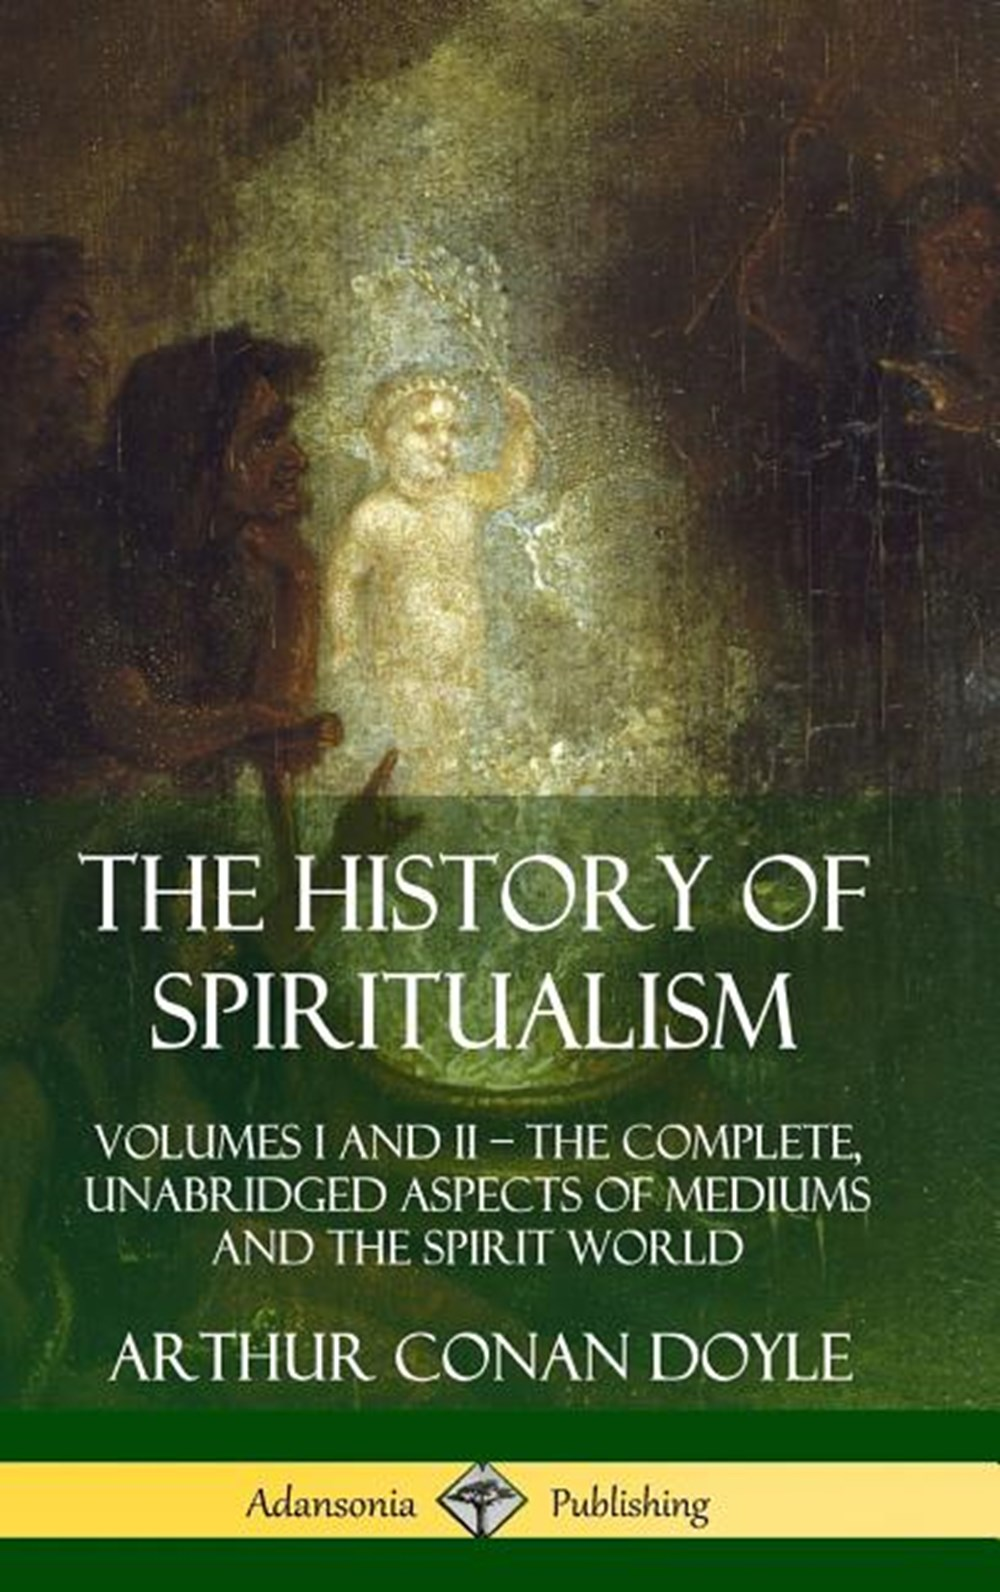 History of Spiritualism Volumes I and II ? The Complete, Unabridged Aspects of Mediums and the Spiri